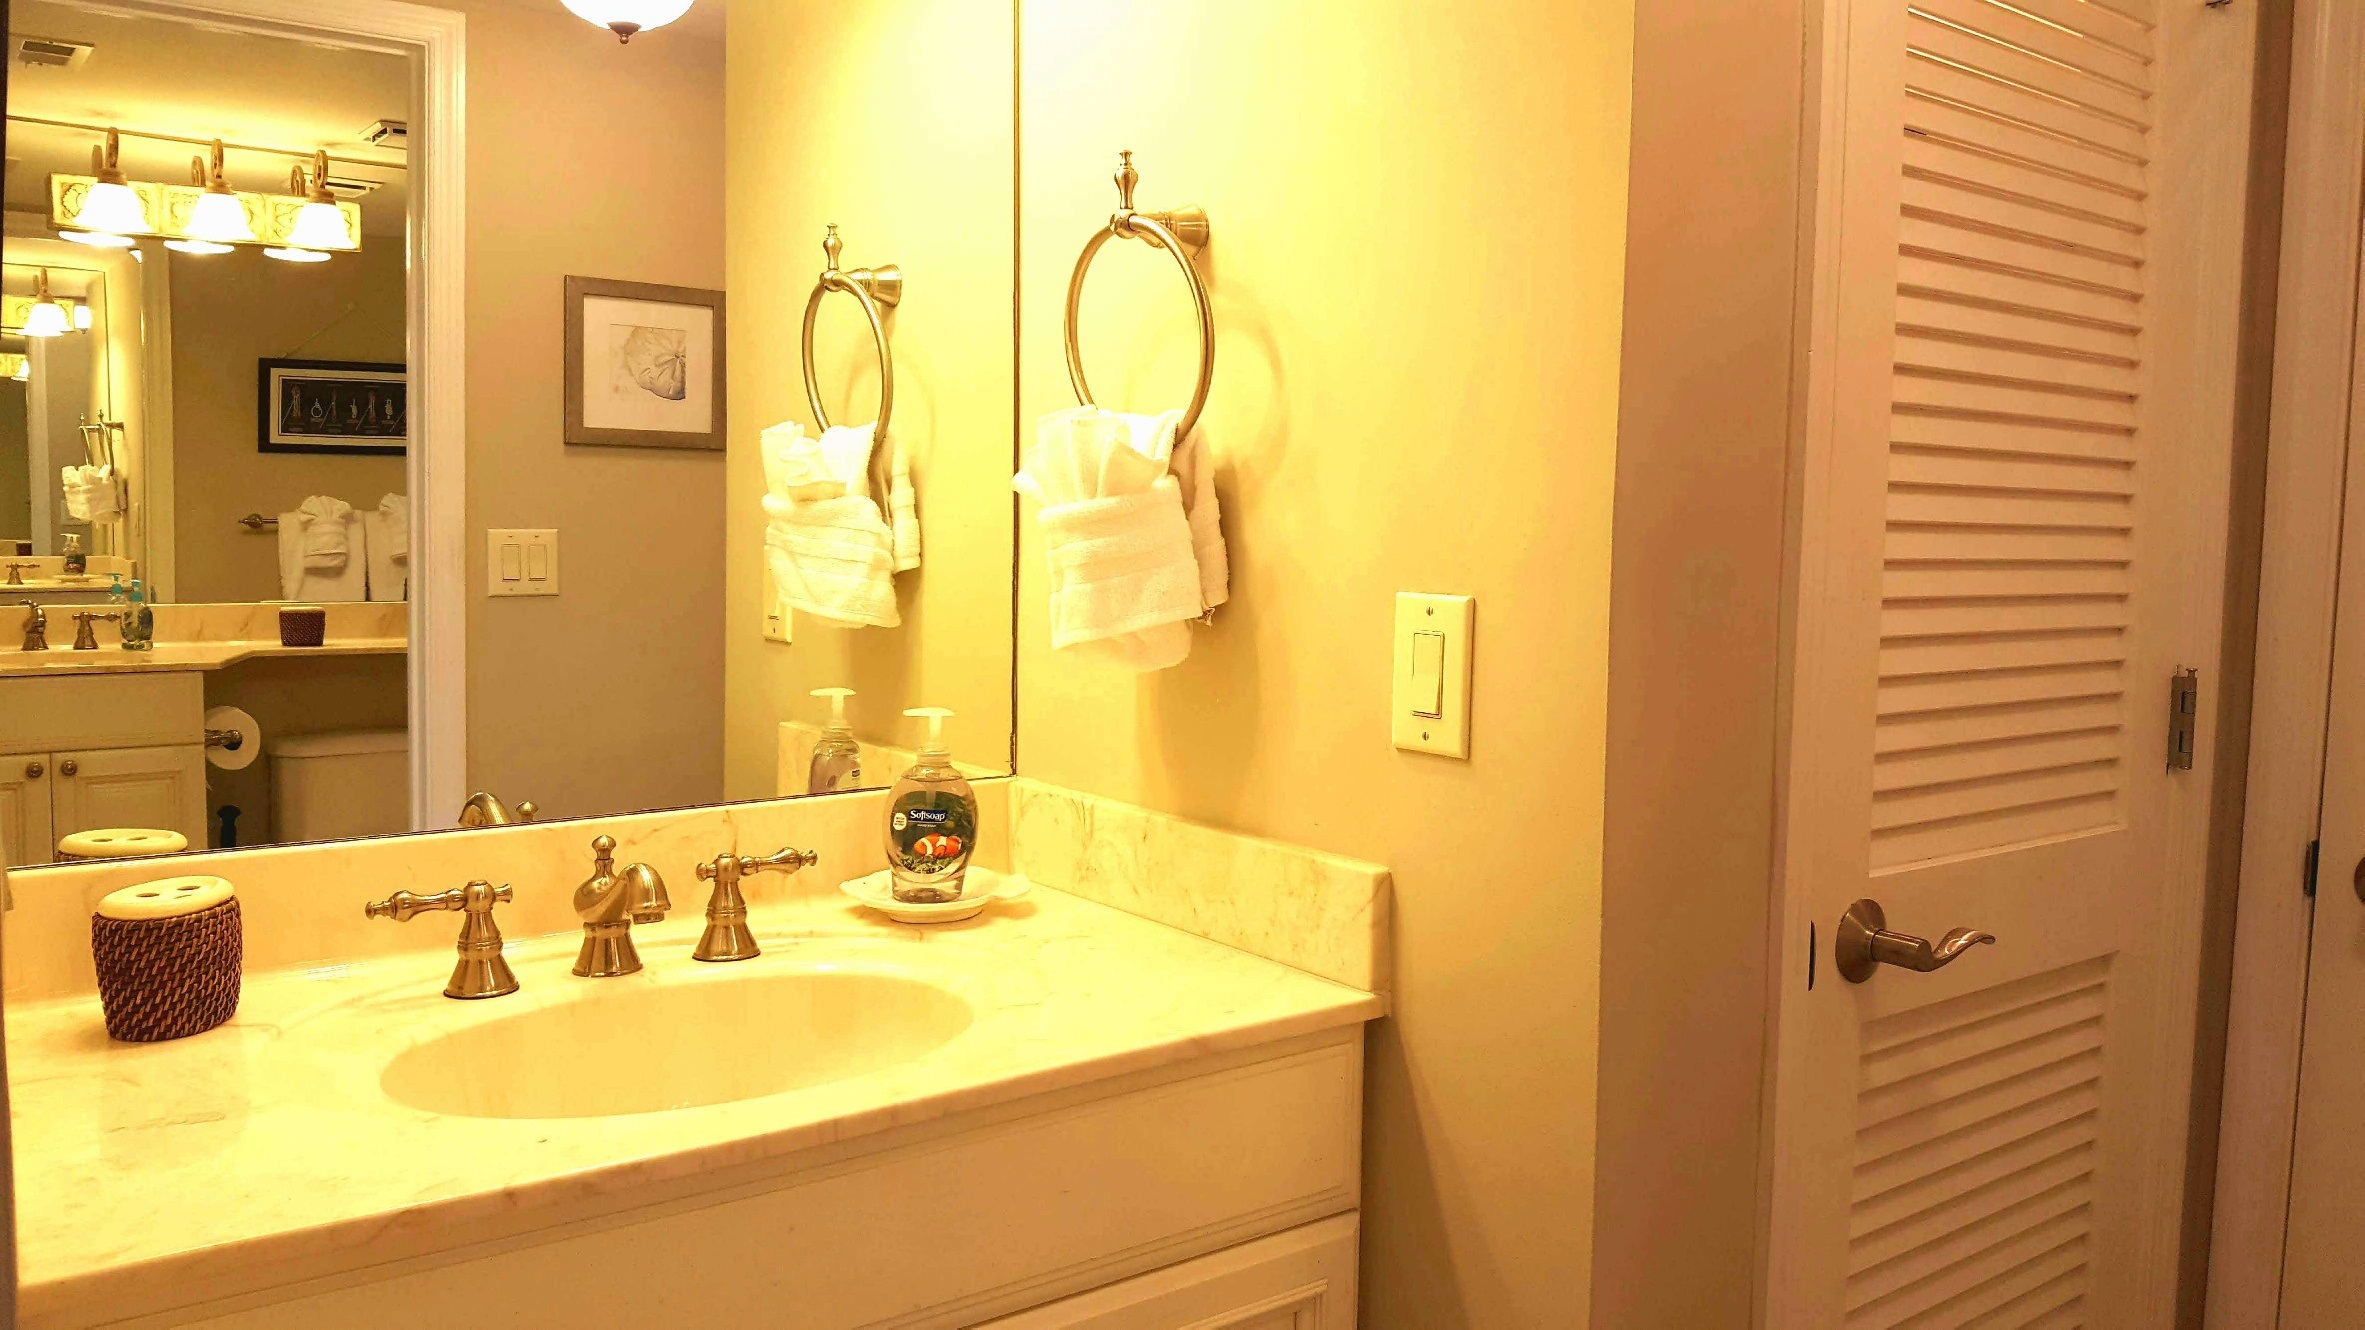 Vanity area adjacent to second bedroom, opposite second bath room. (Coat closet and laundry closet doors to the right)